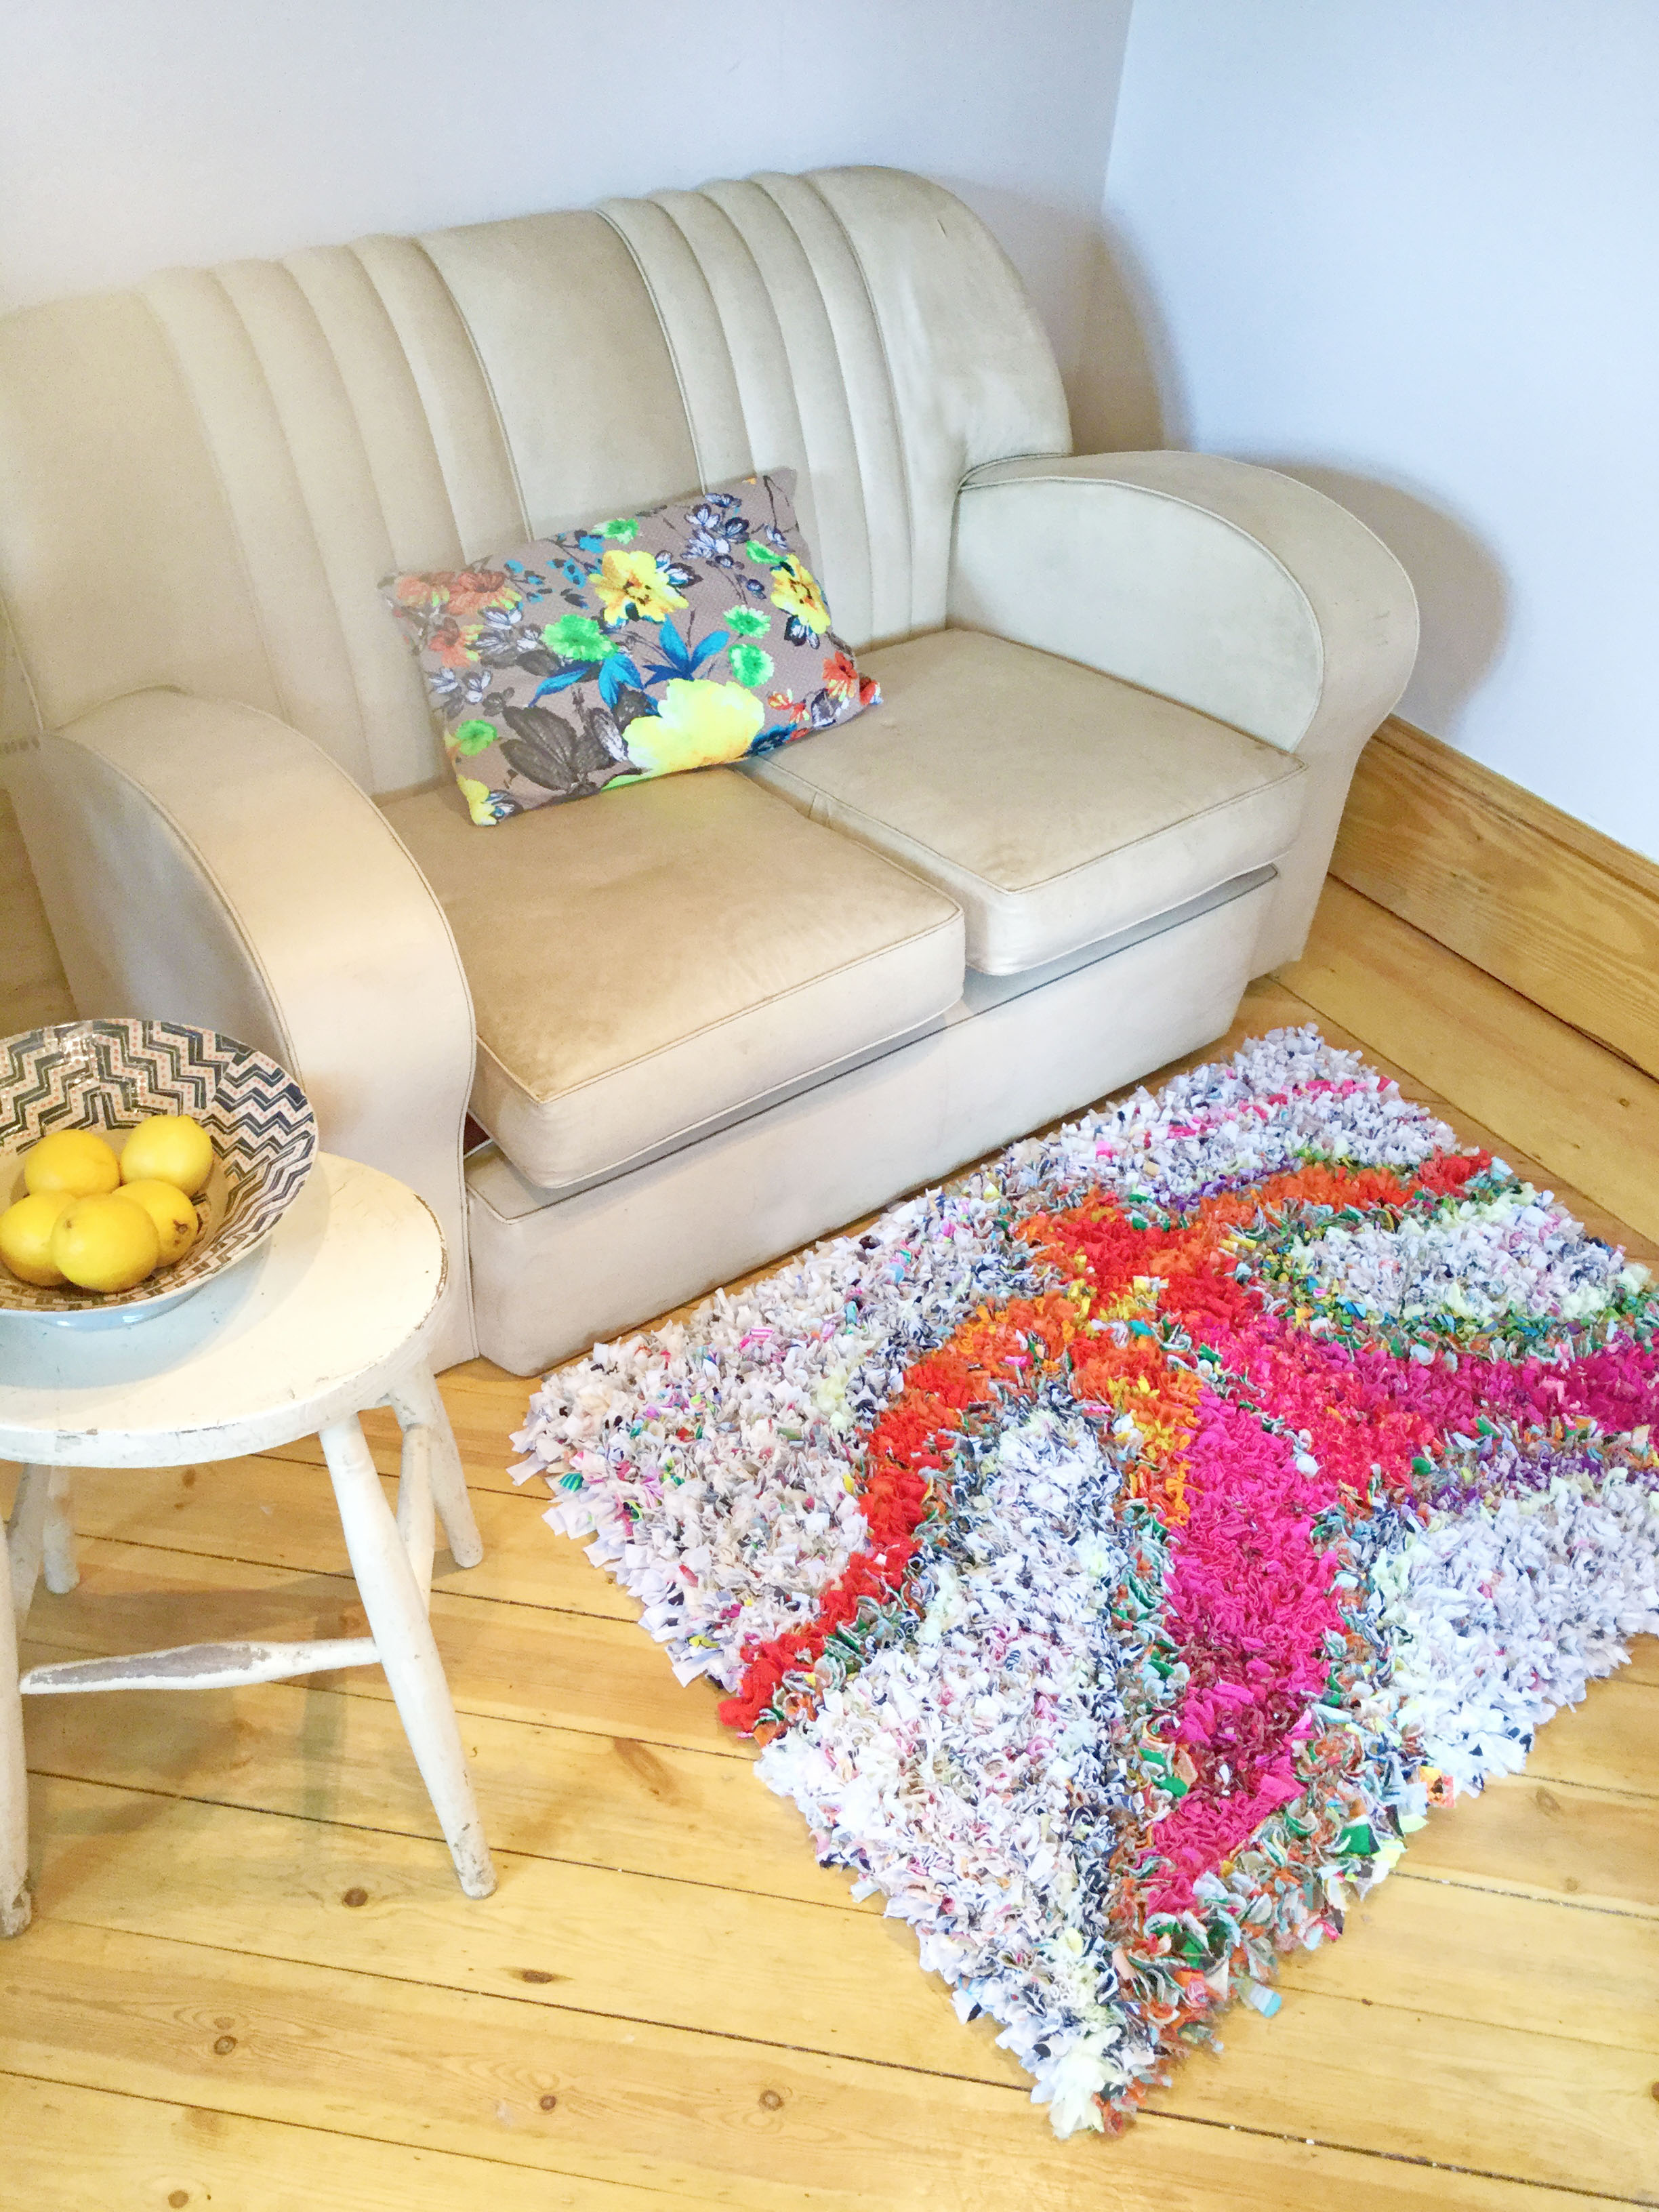 A unique rag rug in front of a white vintage sofa on a wooden floor